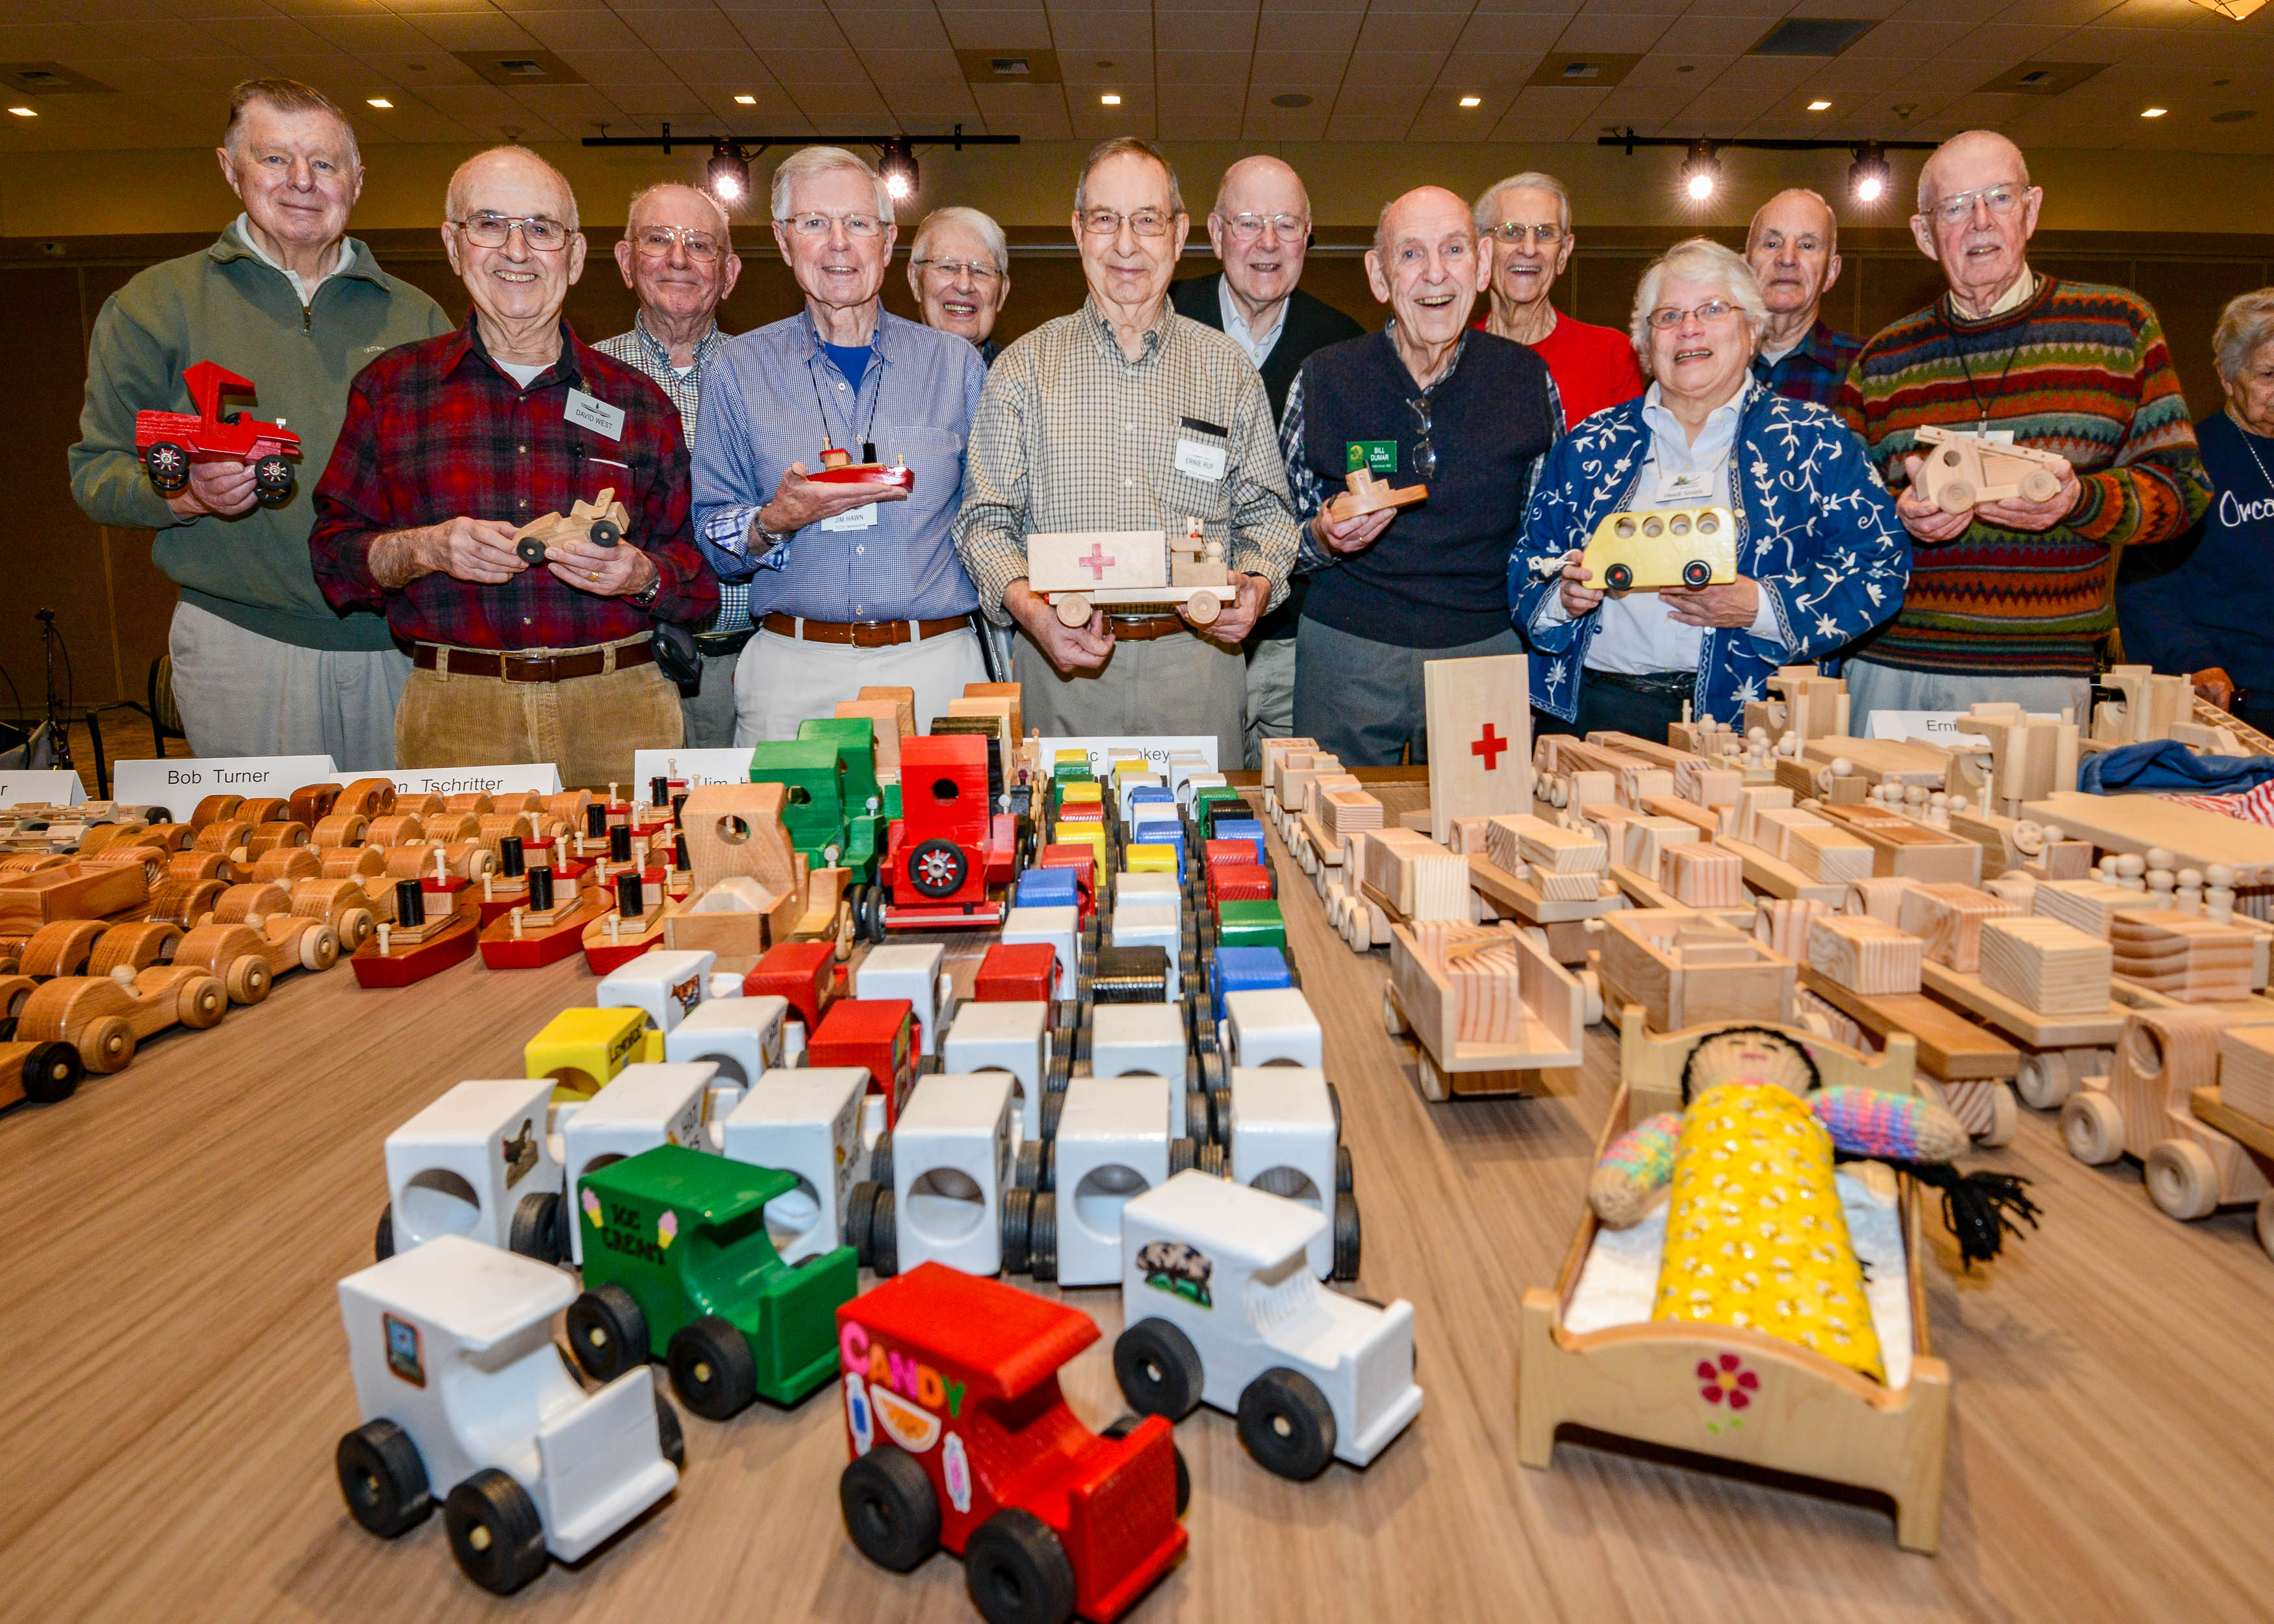 Granting a Child's Wish – One Wooden Toy at a Time